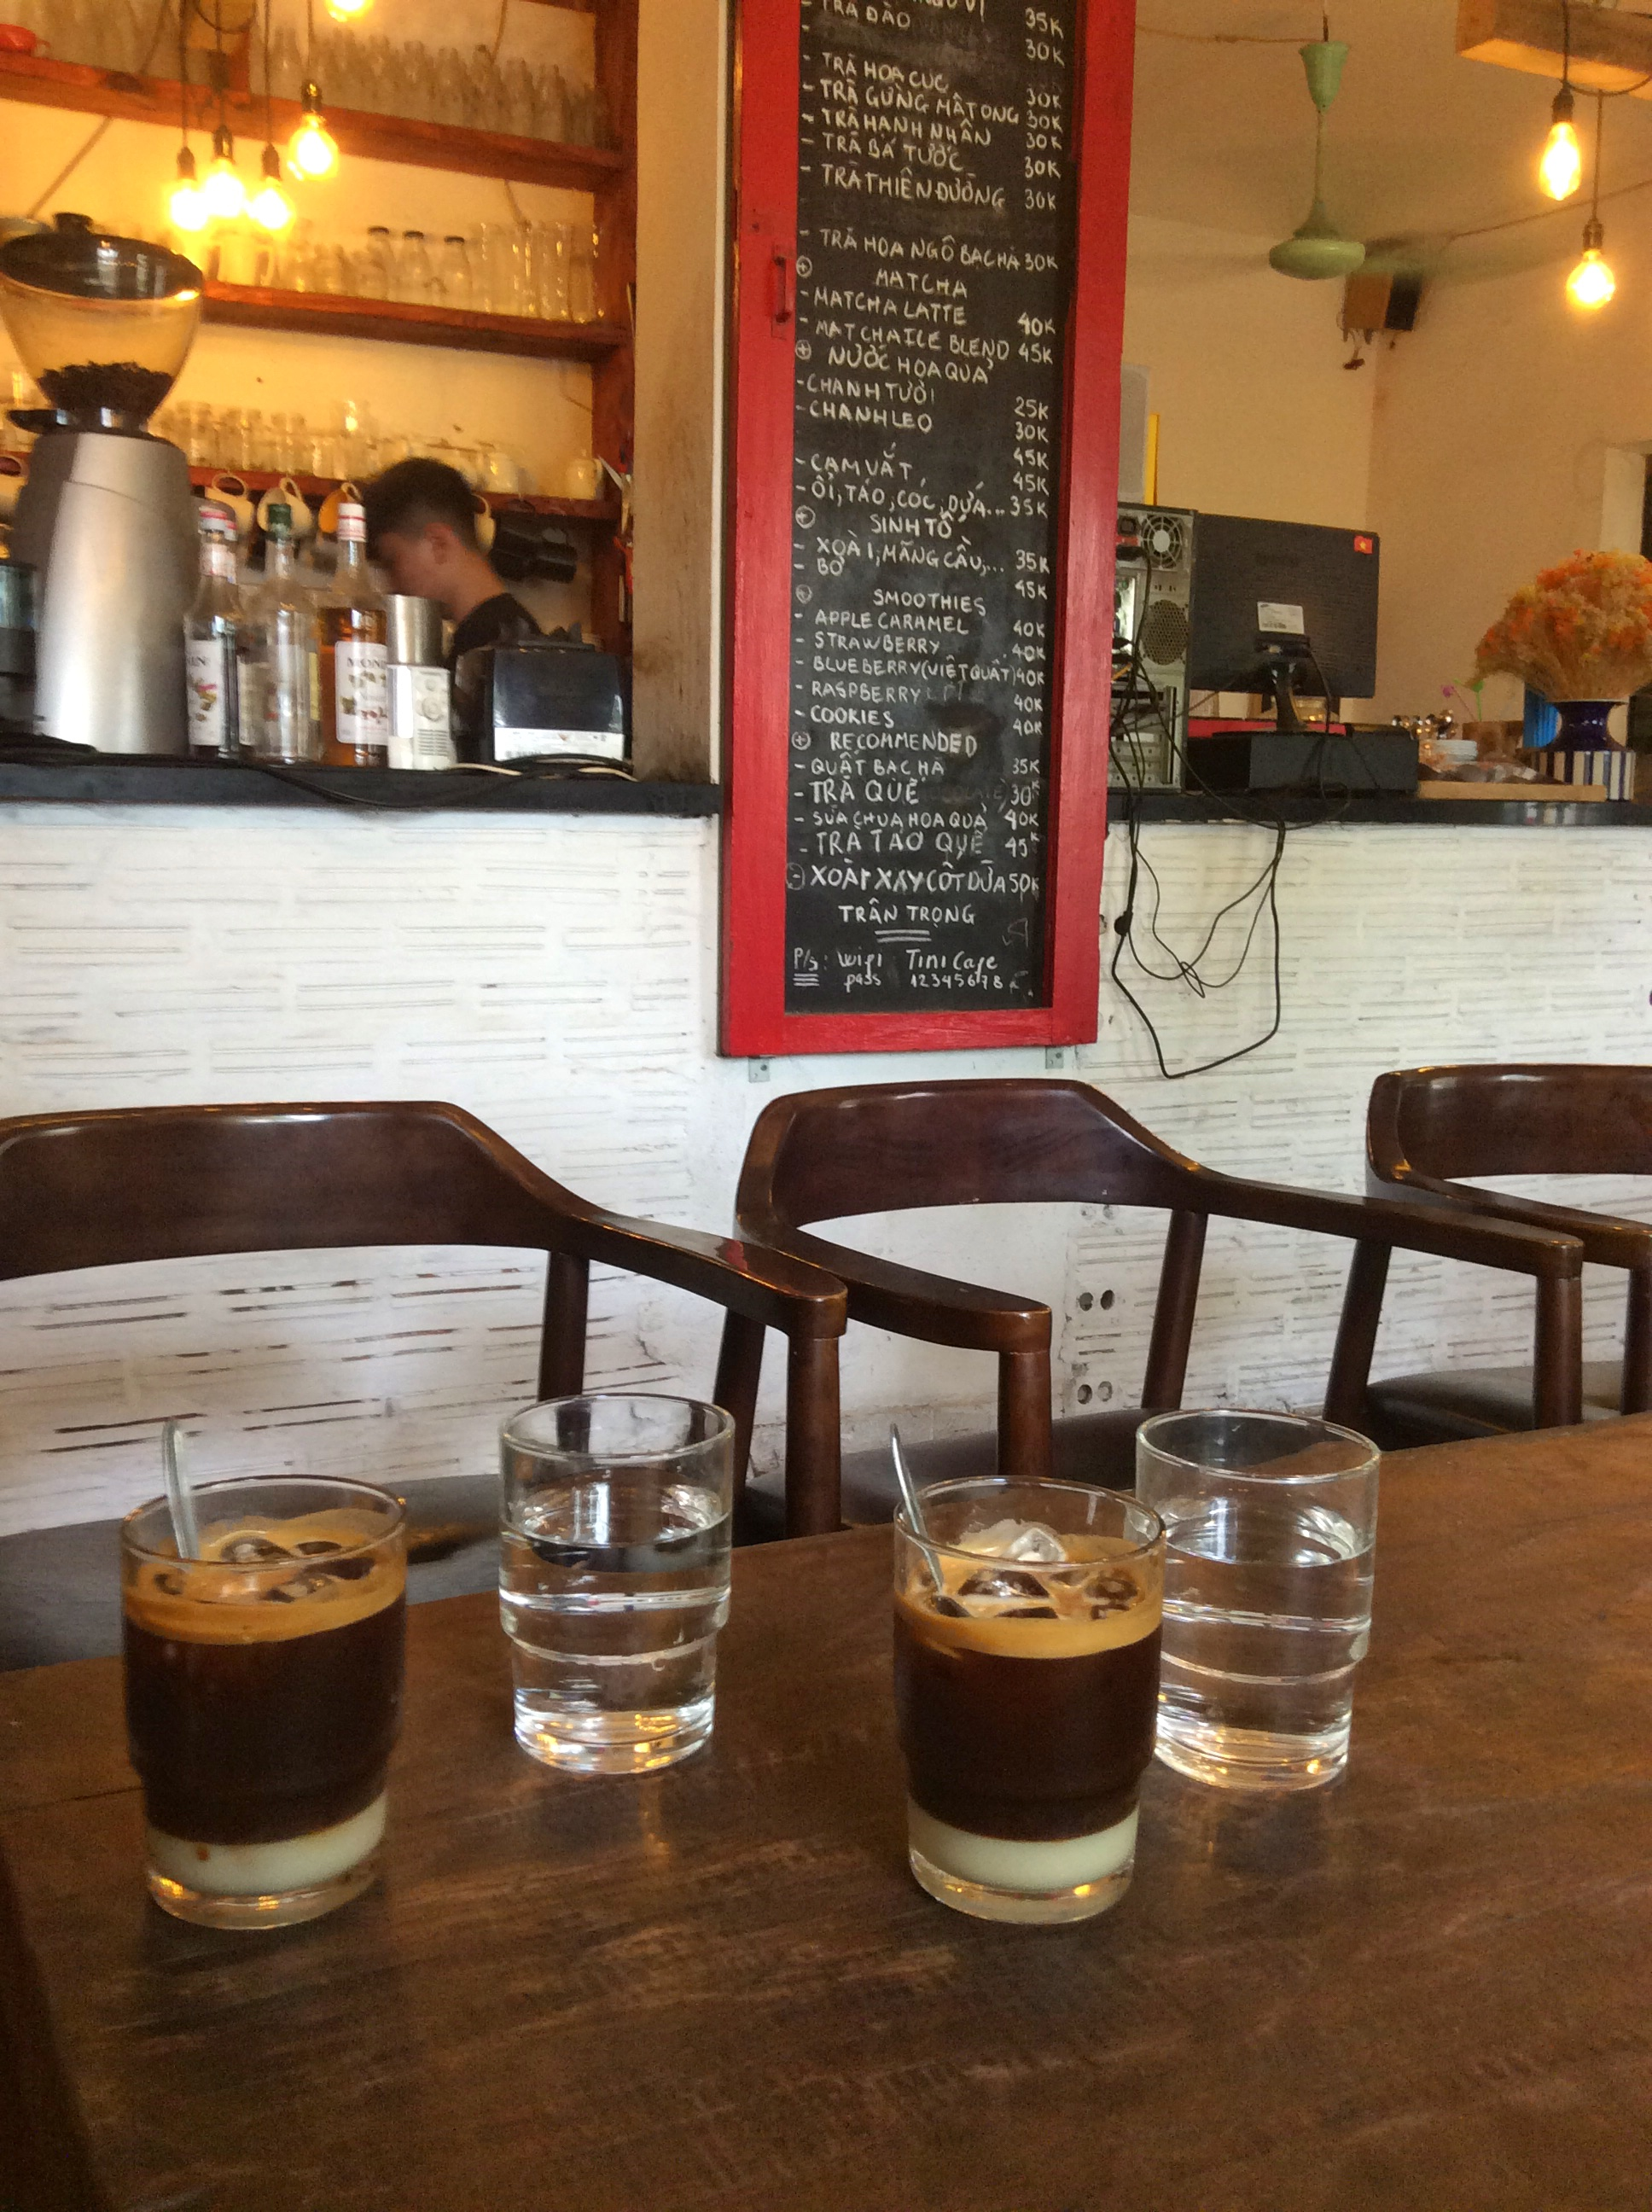 Inside TIny cafe with a cozy atmosphere